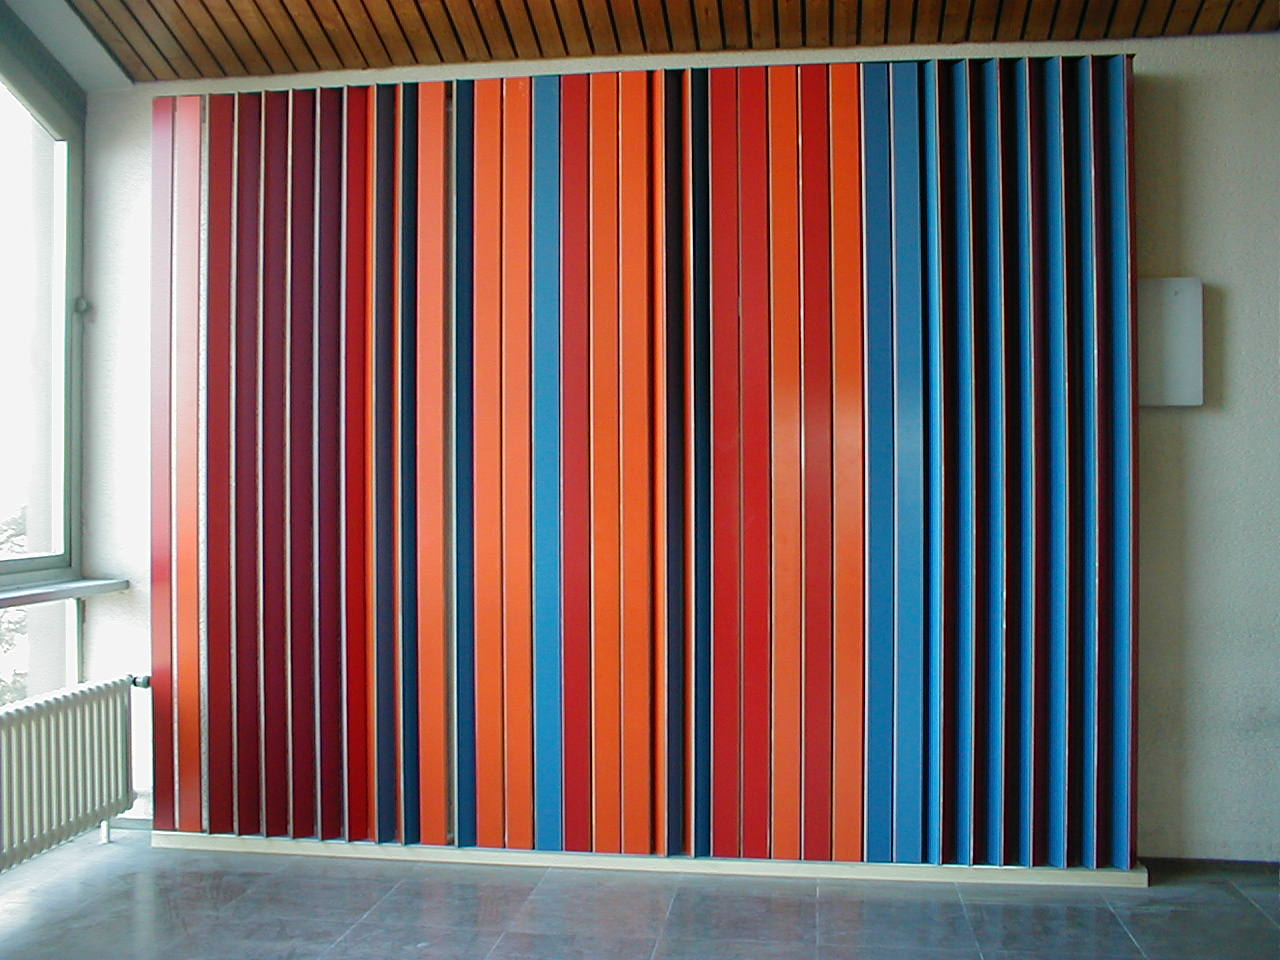 'Interventions', Interactive color installation in front of the main auditorium @TU KL, 2003  Independent student project  ©Etta Dannemann + Sonja Nagel